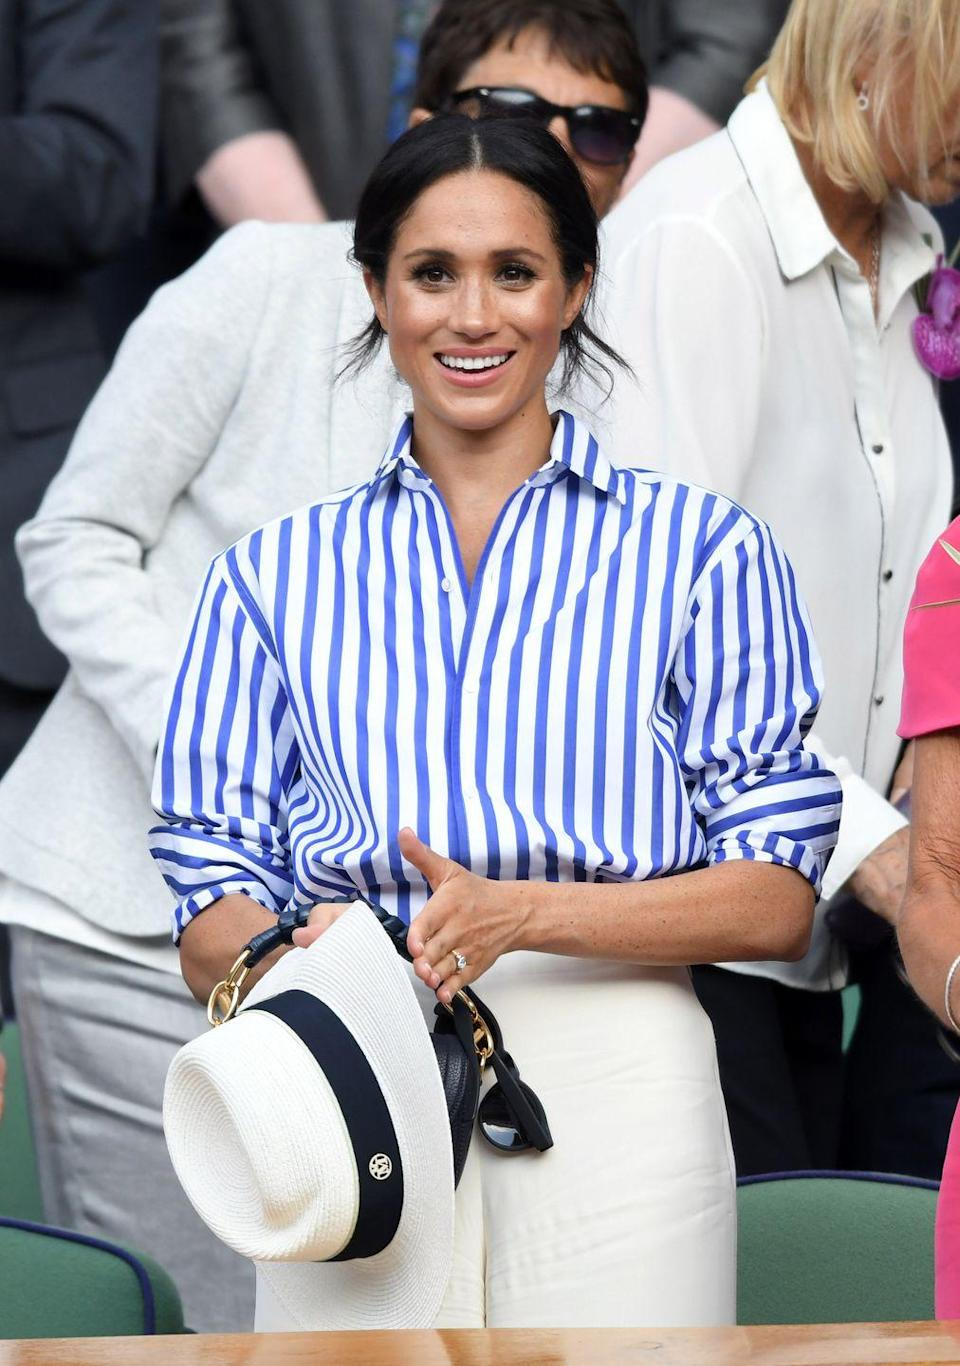 """<p>Maybe you want to add some spice to your classic white button-down. If so, blue stripes are the perfect way to elevate the look. Meghan chose this Polo Ralph Lauren button-down for Wimbledon in 2018. </p><p><a class=""""link rapid-noclick-resp"""" href=""""https://go.redirectingat.com?id=74968X1596630&url=https%3A%2F%2Fwww.nordstrom.com%2Fs%2Fpolo-ralph-lauren-stripe-cotton-button-up-shirt%2F5834001&sref=https%3A%2F%2Fwww.elle.com%2Ffashion%2Fshopping%2Fg36477134%2Fmeghan-markle-white-button-down-shirts%2F"""" rel=""""nofollow noopener"""" target=""""_blank"""" data-ylk=""""slk:Shop Now"""">Shop Now</a></p>"""